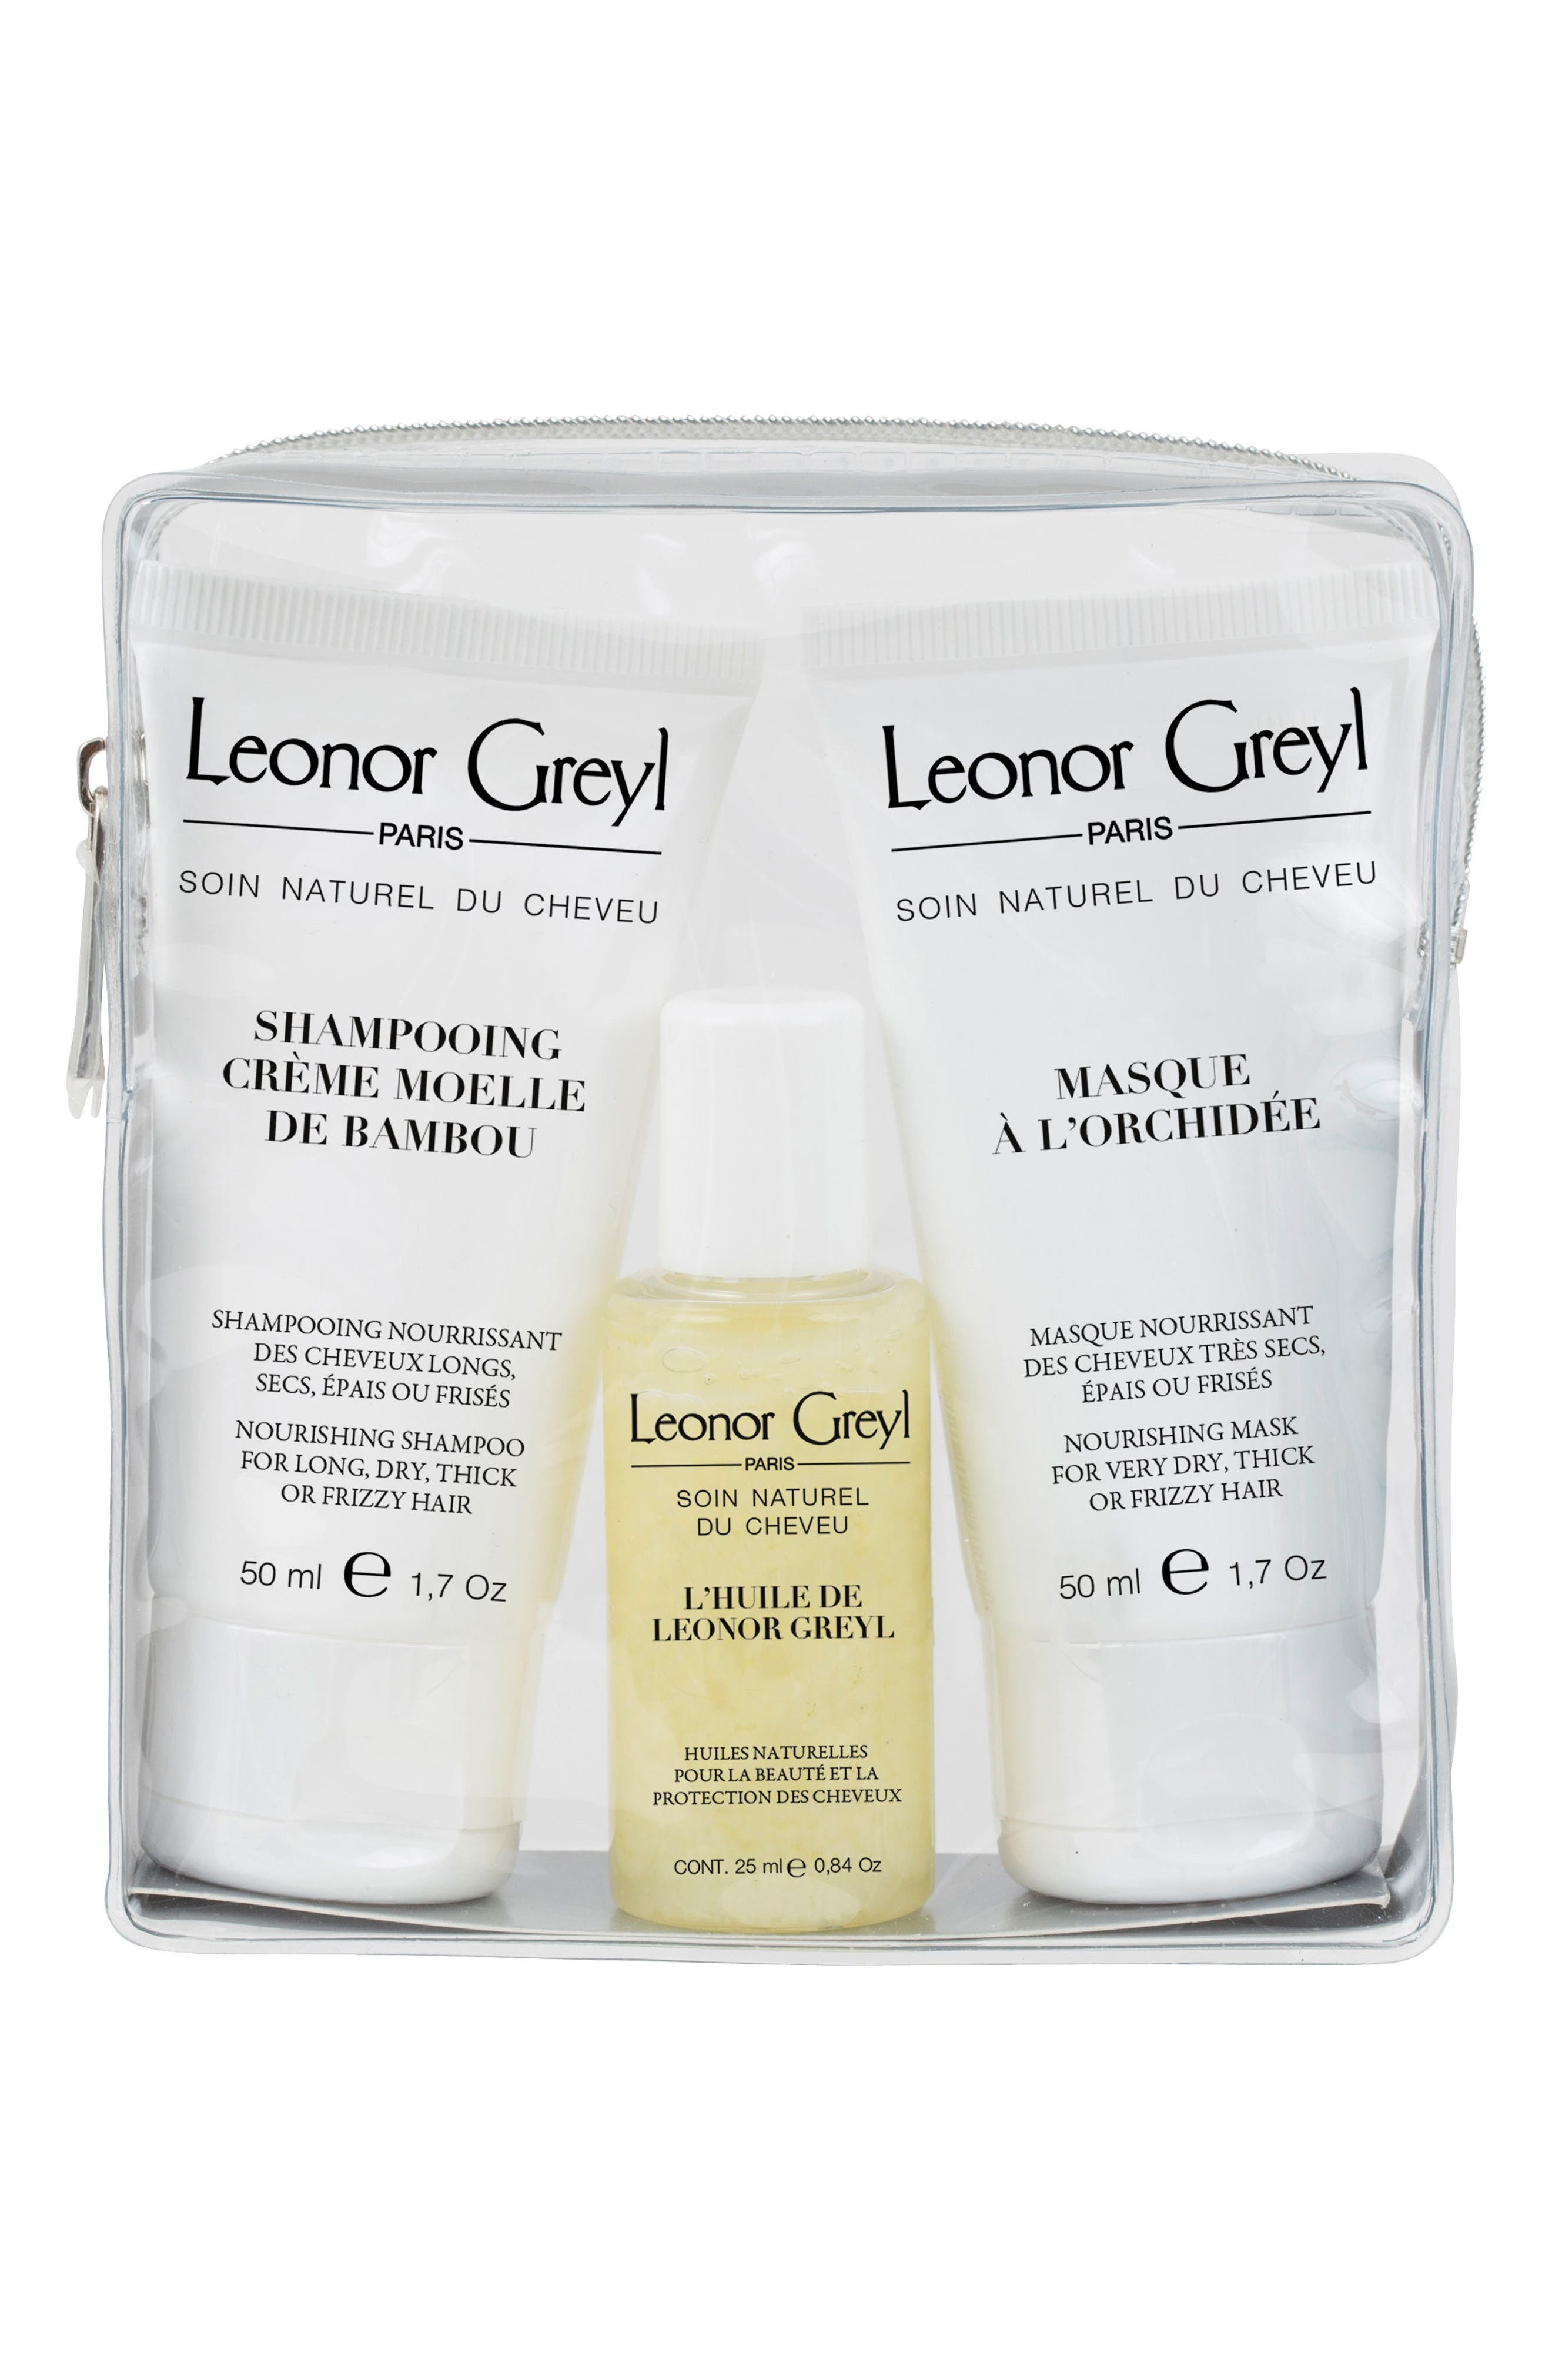 LEONOR GREYL PARIS Luxury Travel Kit for Very Dry, Thick or Curly Hair, Main, color, NO COLOR